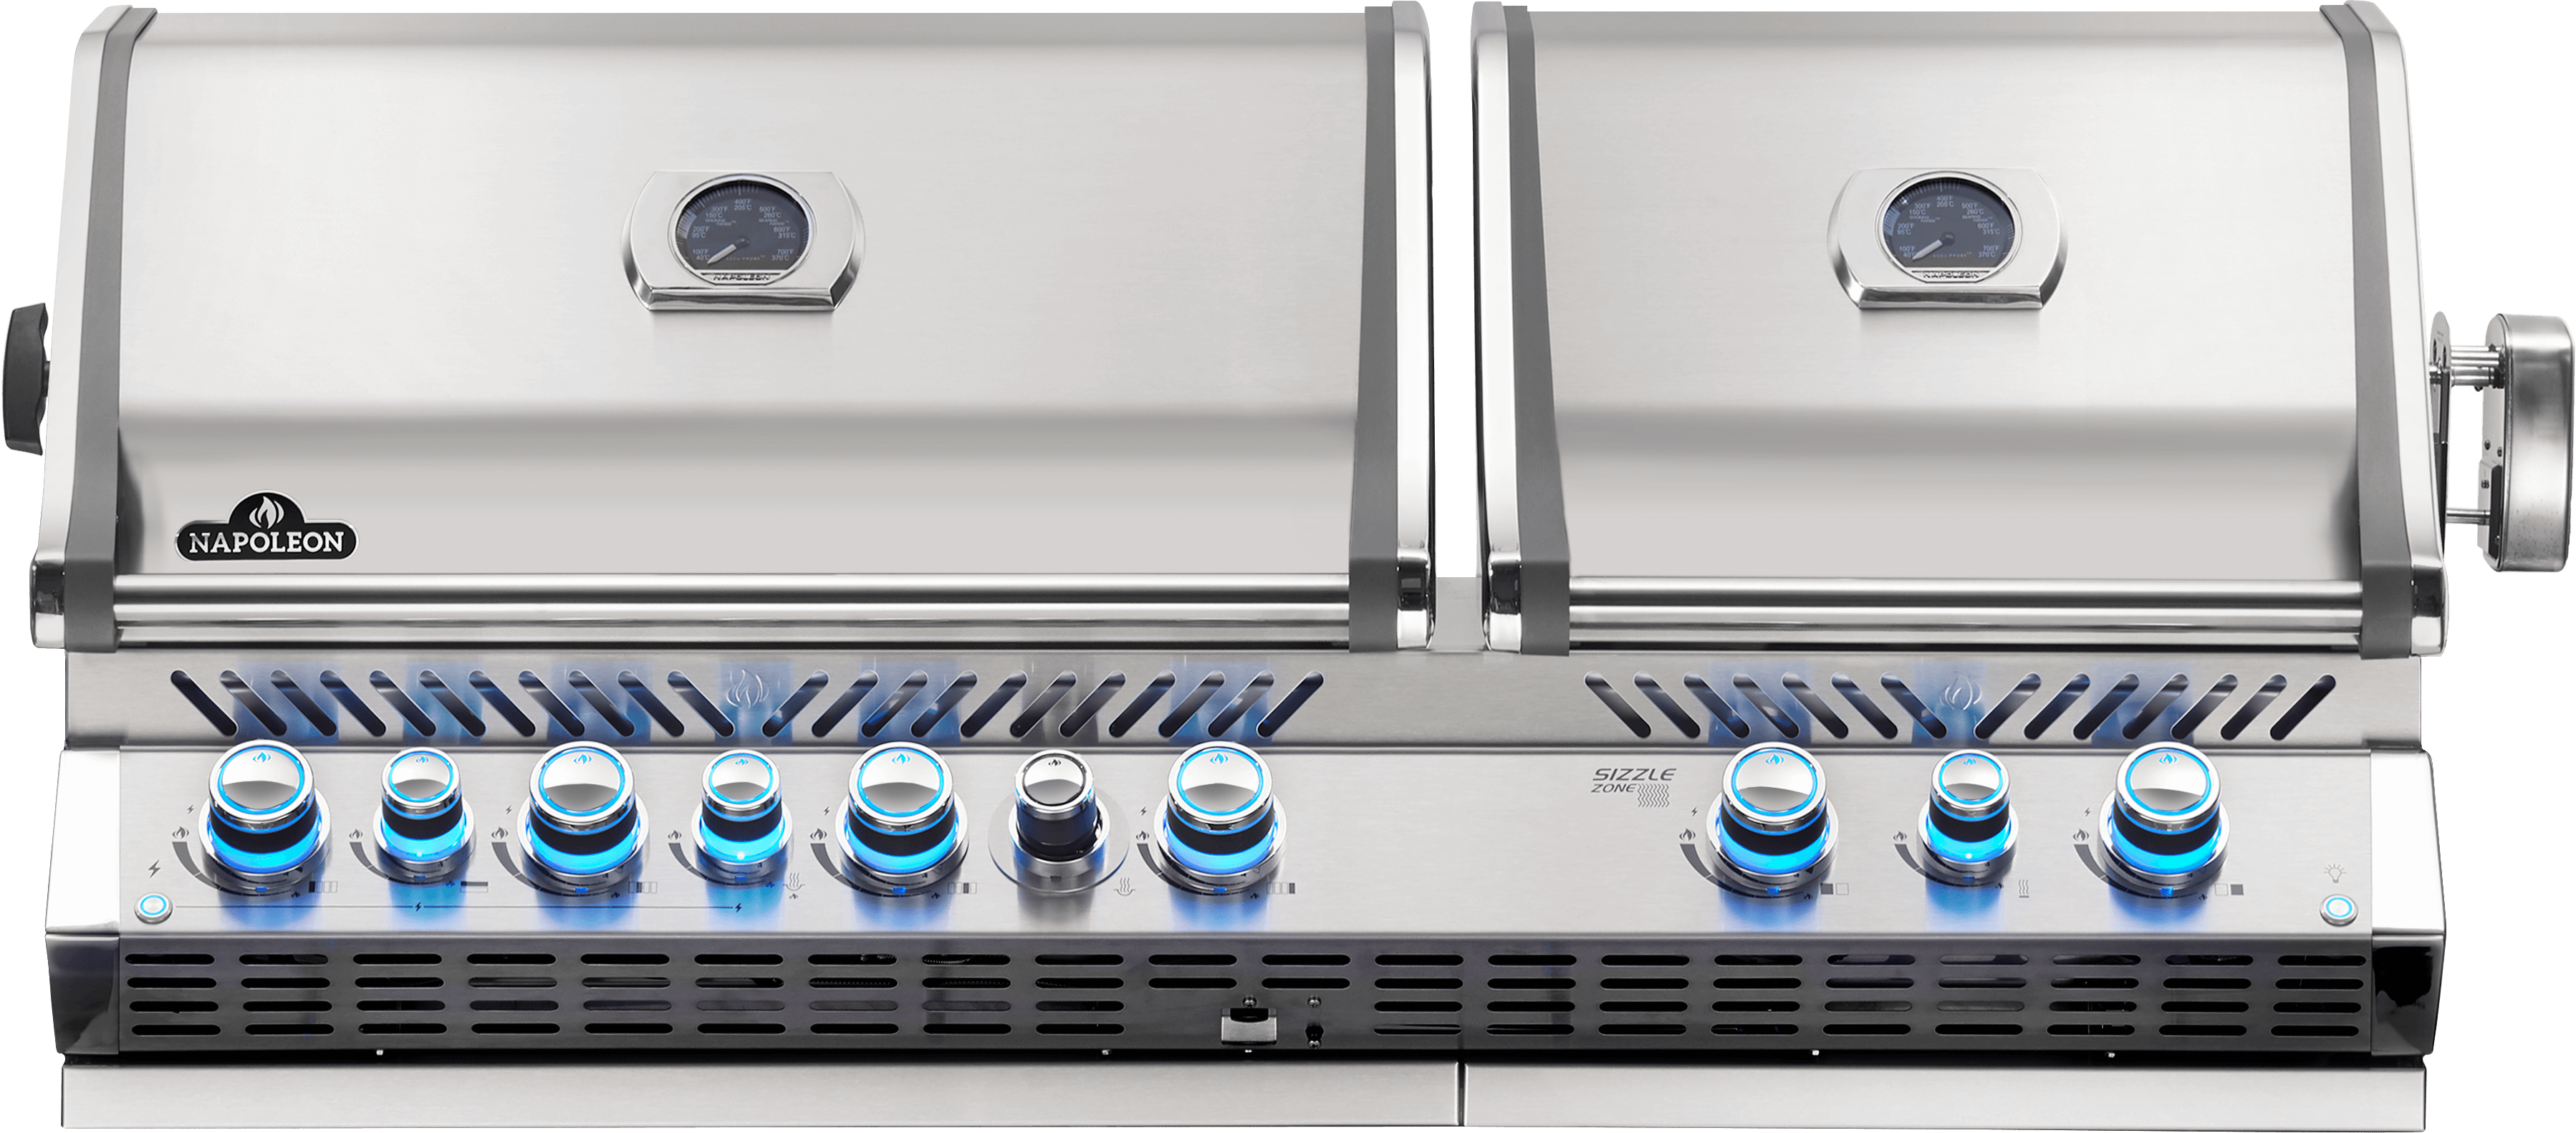 Napoleon Built-in Prestige PRO™ 825 Natural Gas Grill Head with Infrared Bottom and Rear Burner, Stainless Steel